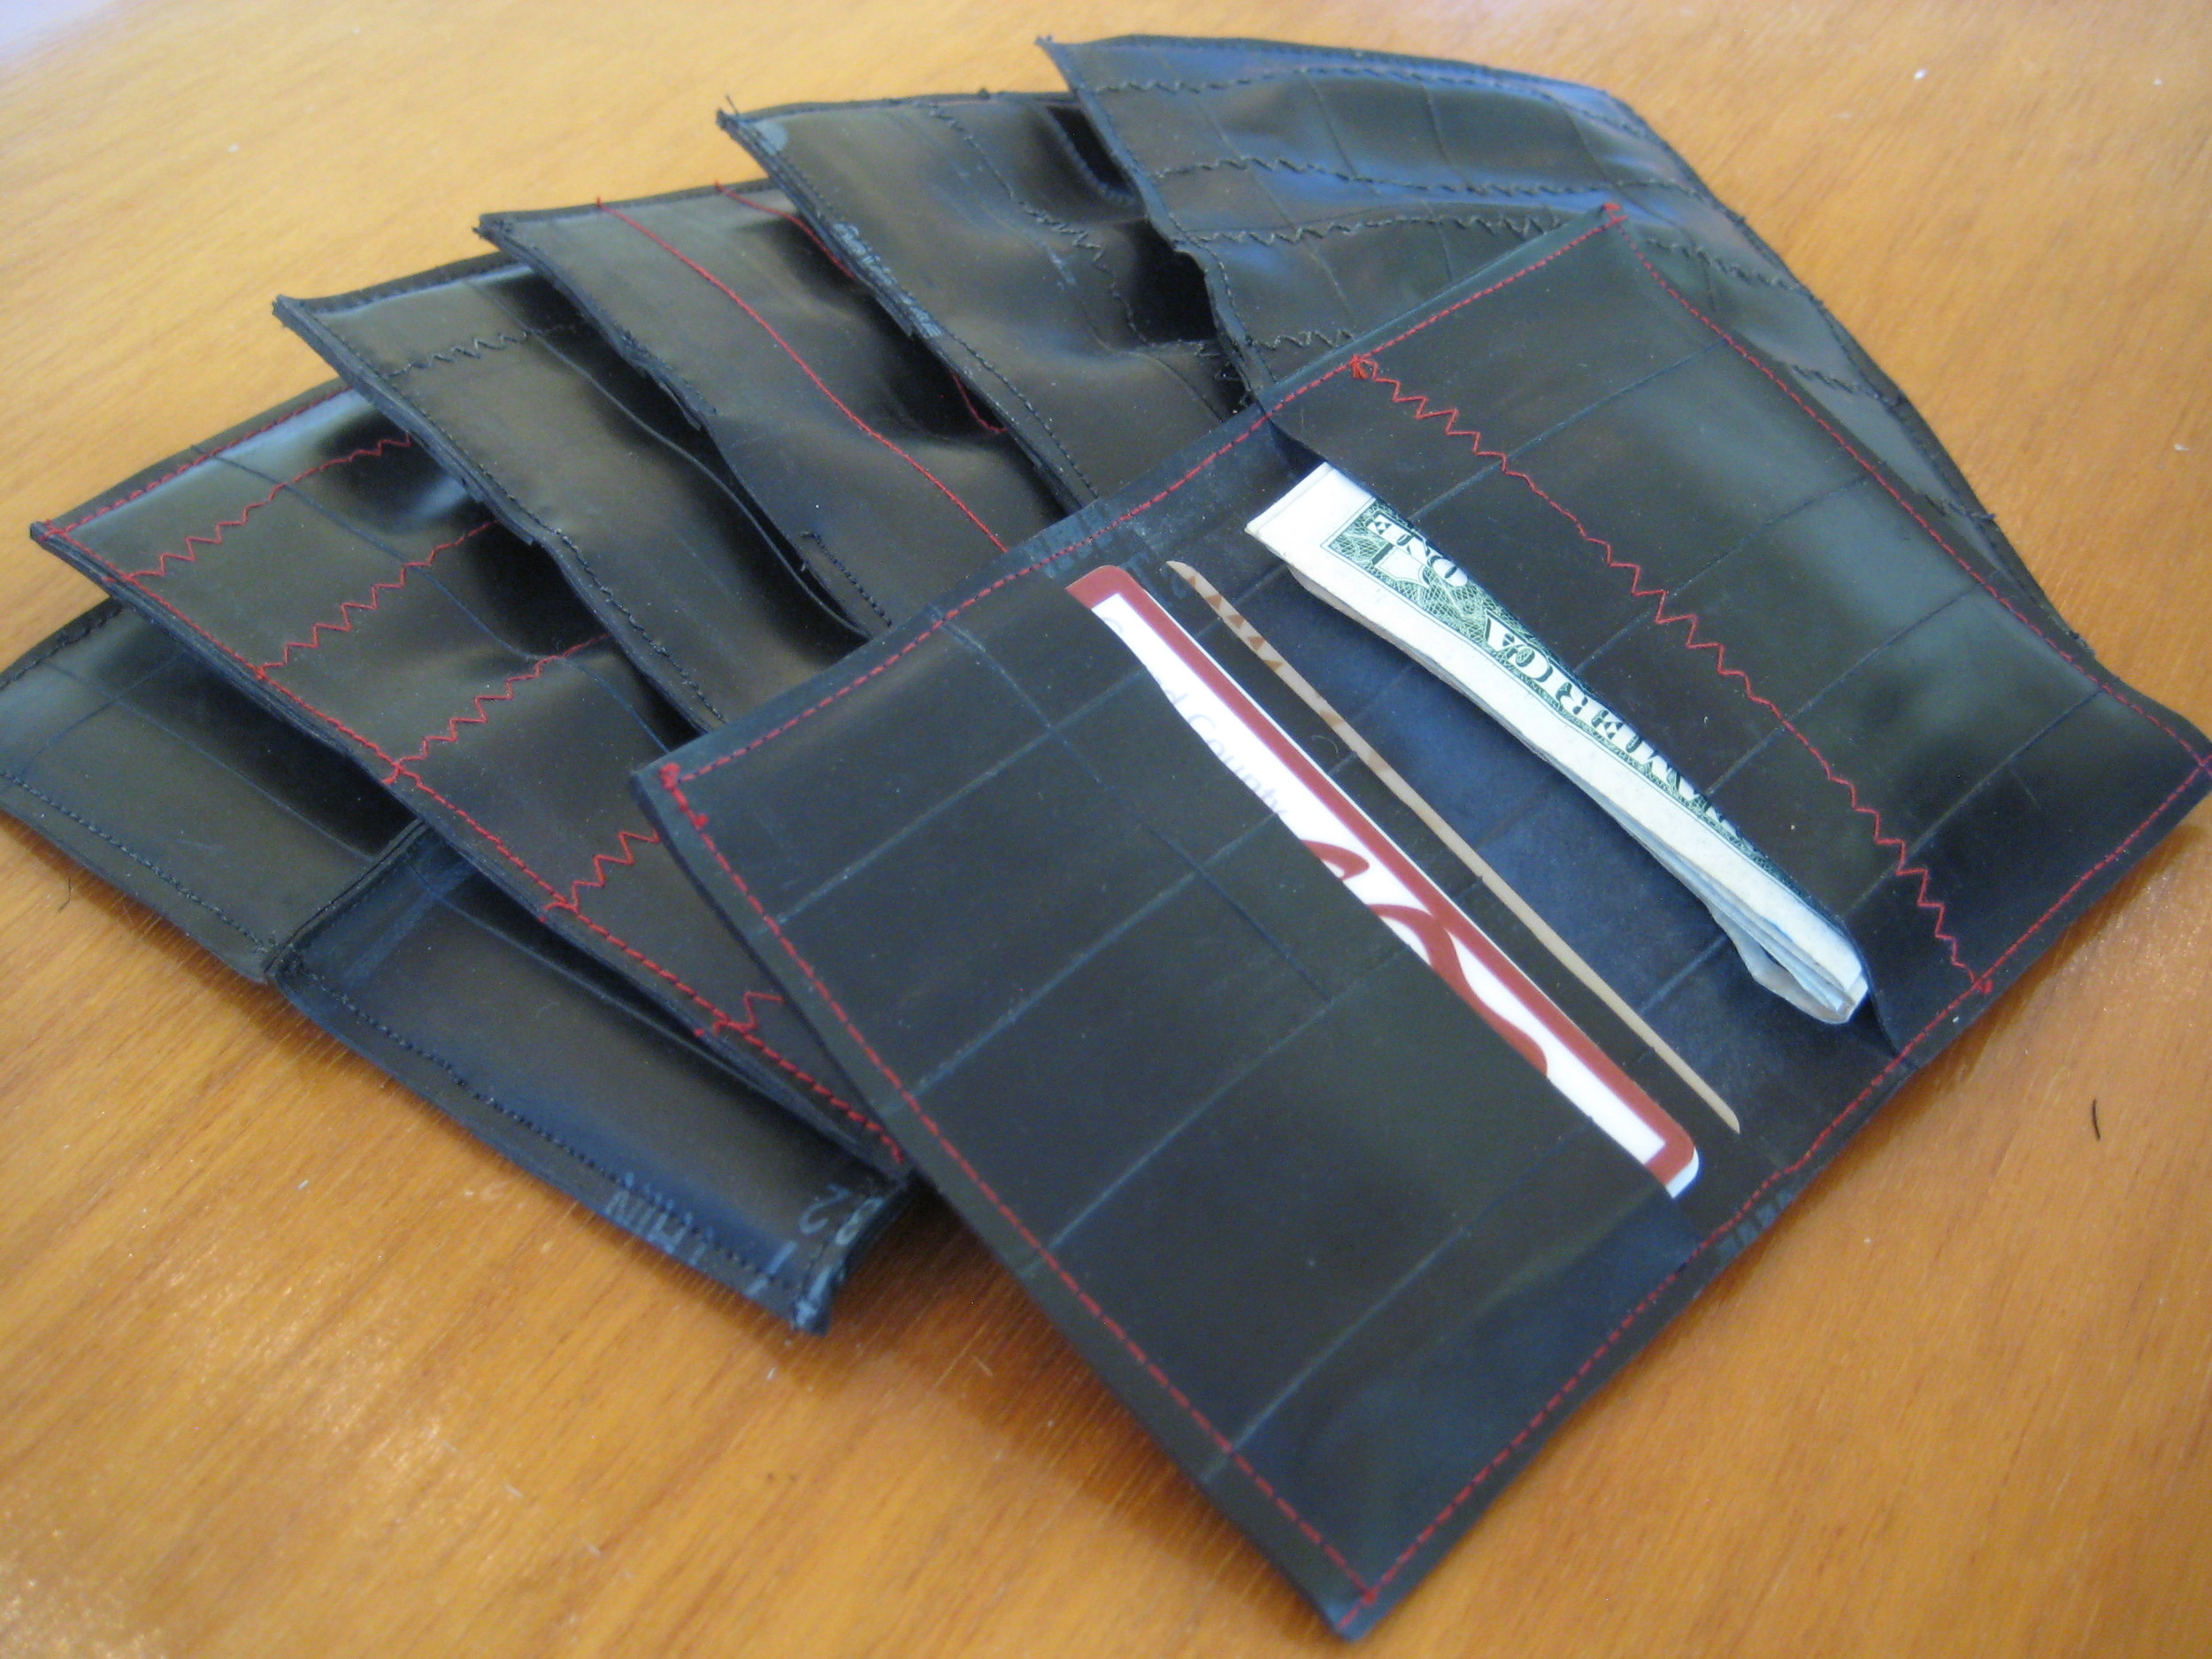 Some of the original wallets